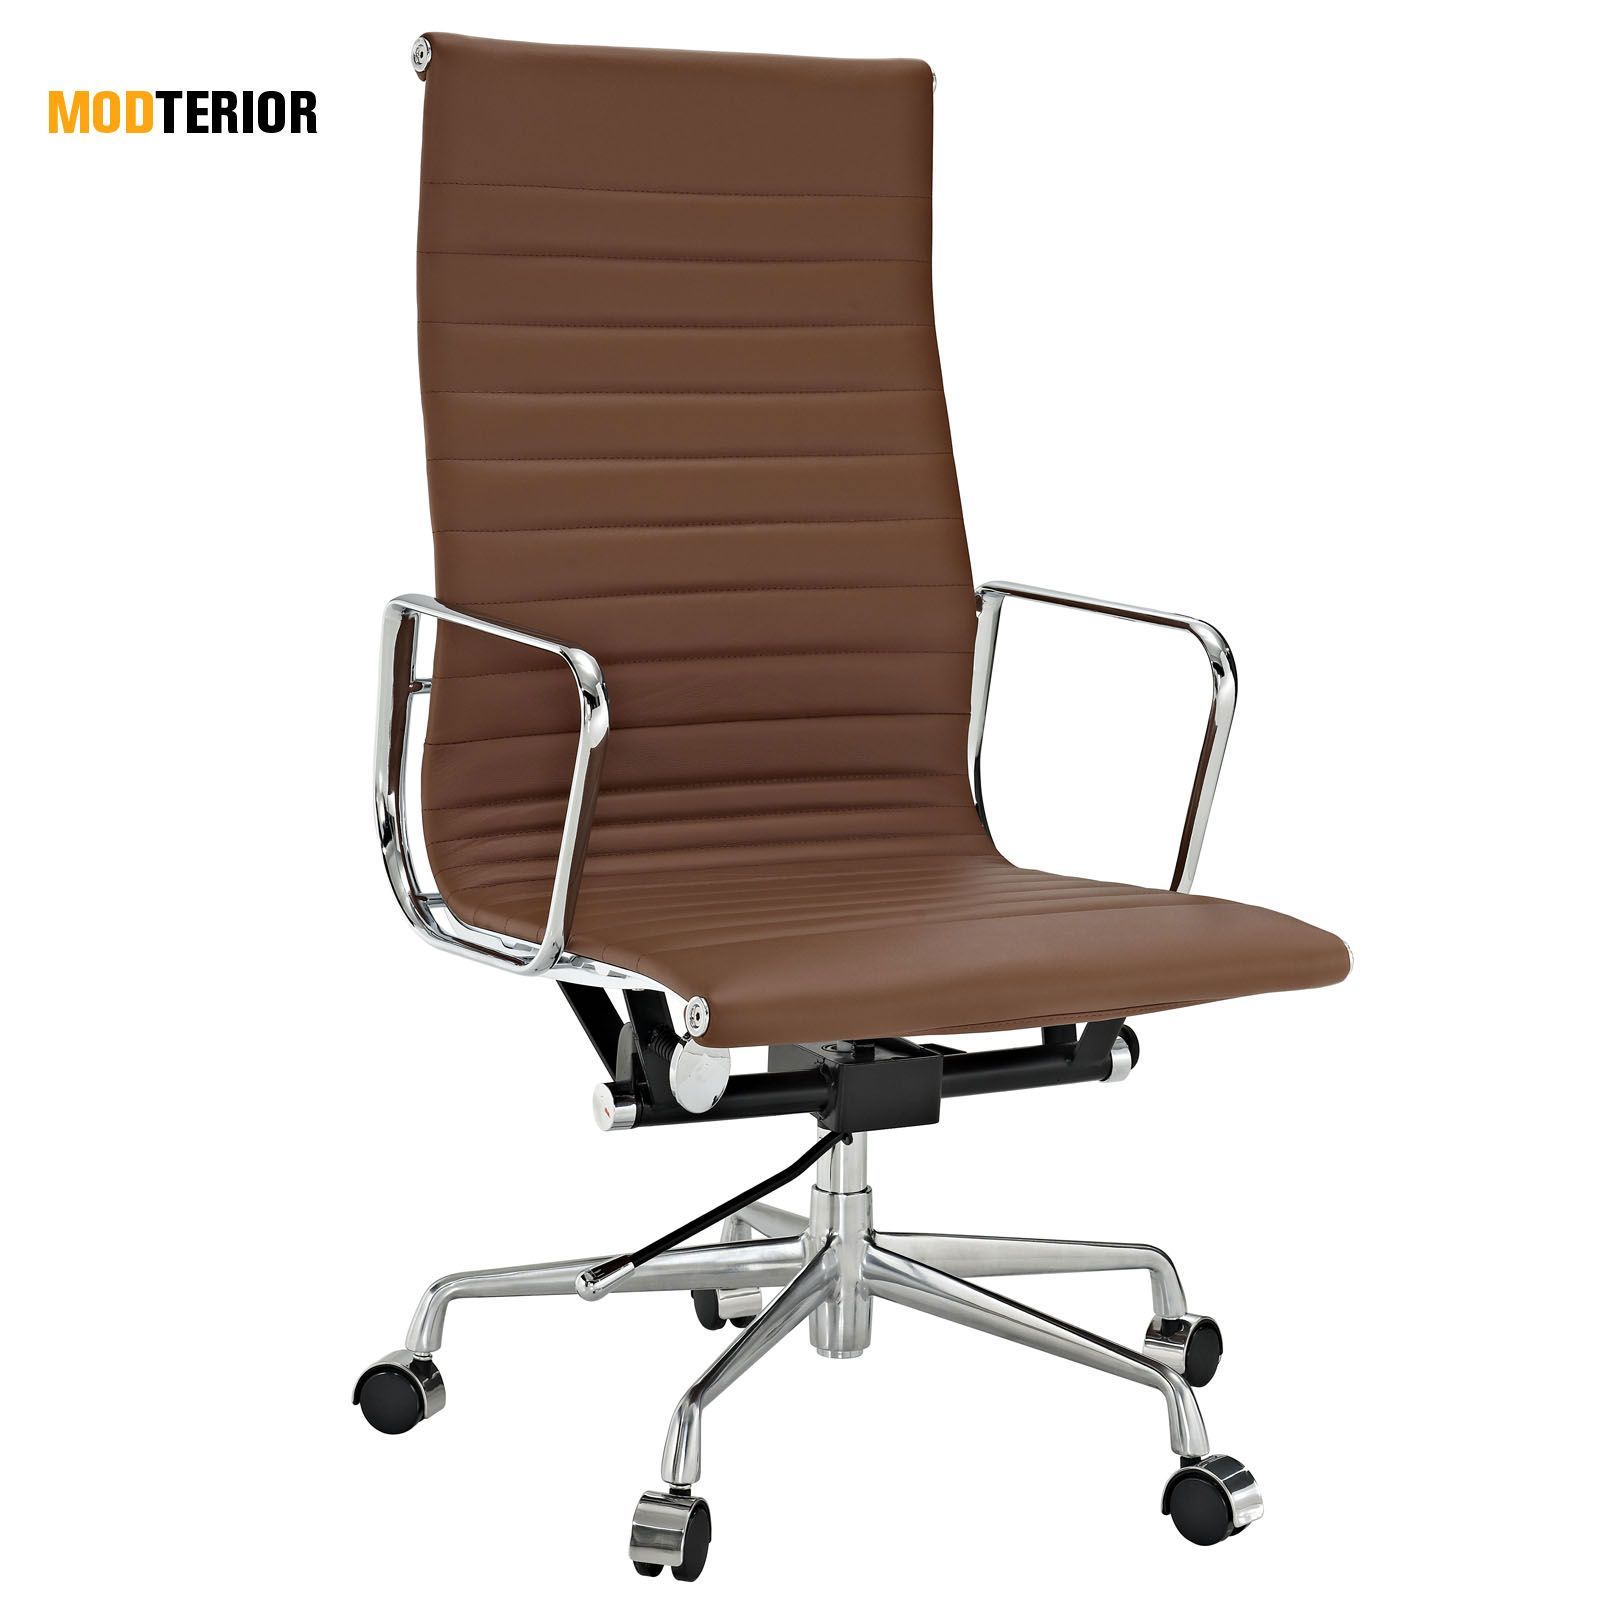 Visit At Https://www.modterior.com For Best Eames Lounge Chair